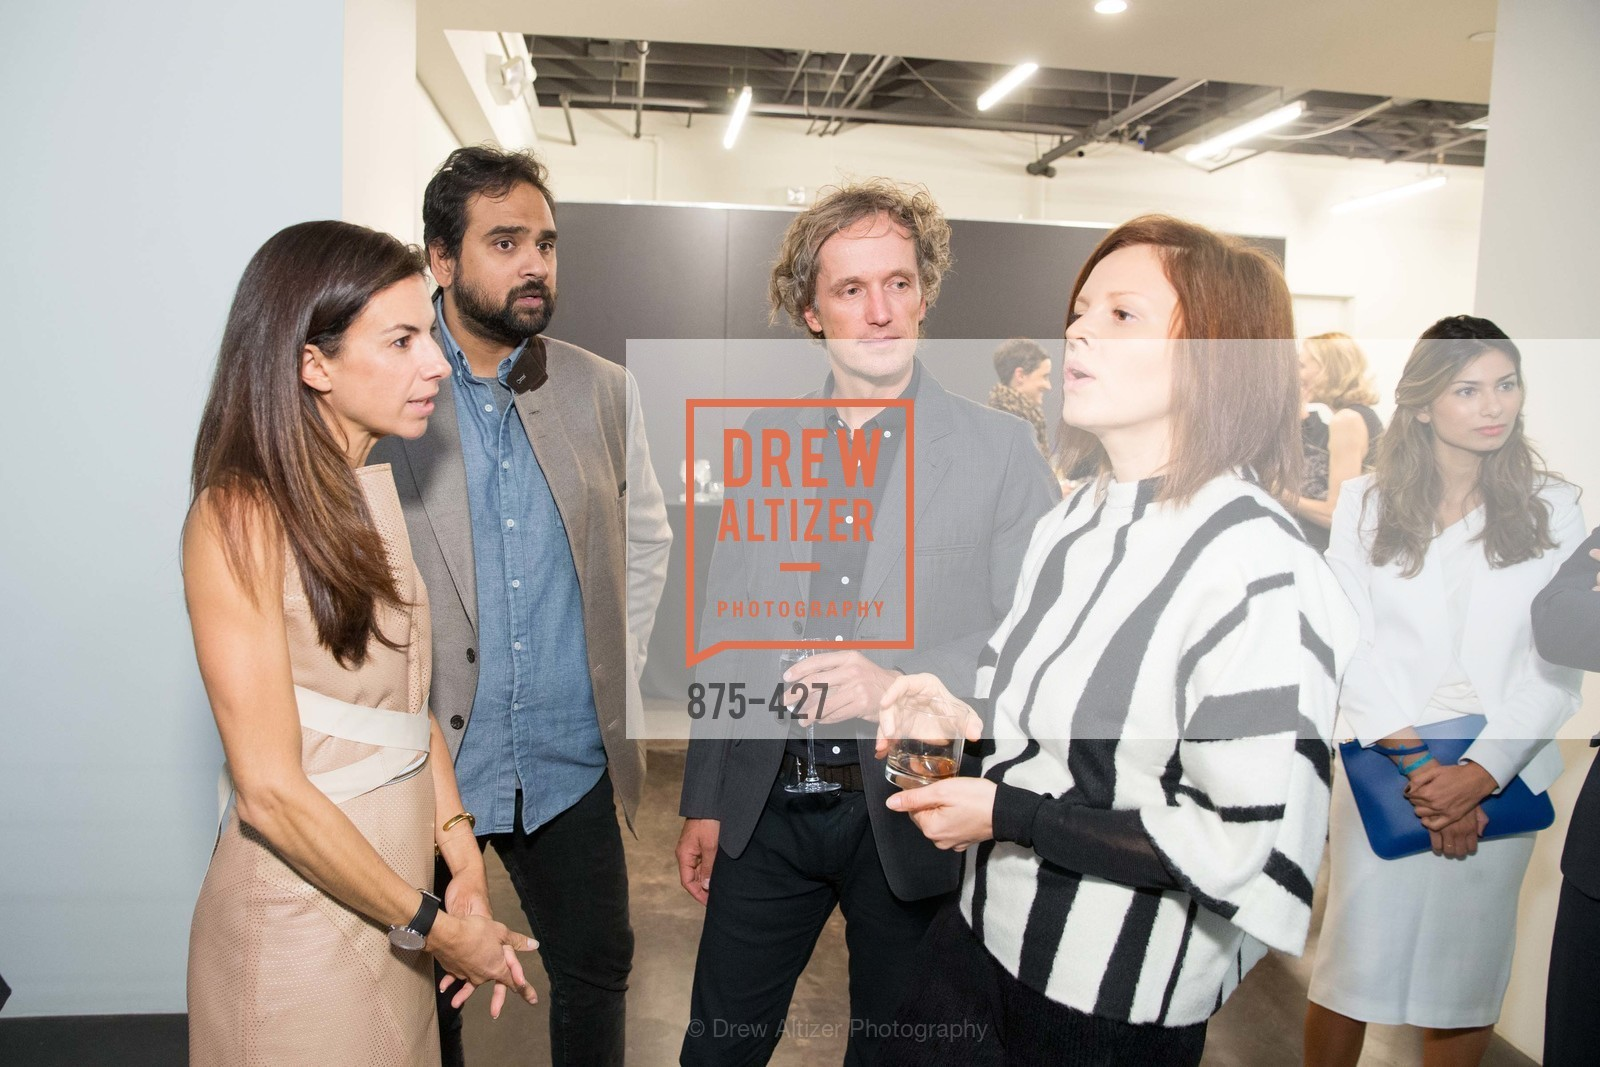 Sabrina Buell, Hosain Rahman, Yves Behar, Svetlana Kuzmicheva-Uspenskaya, Artsy and Sotheby's Dinner at Fused, Fused, October 29th, 2015,Drew Altizer, Drew Altizer Photography, full-service agency, private events, San Francisco photographer, photographer california